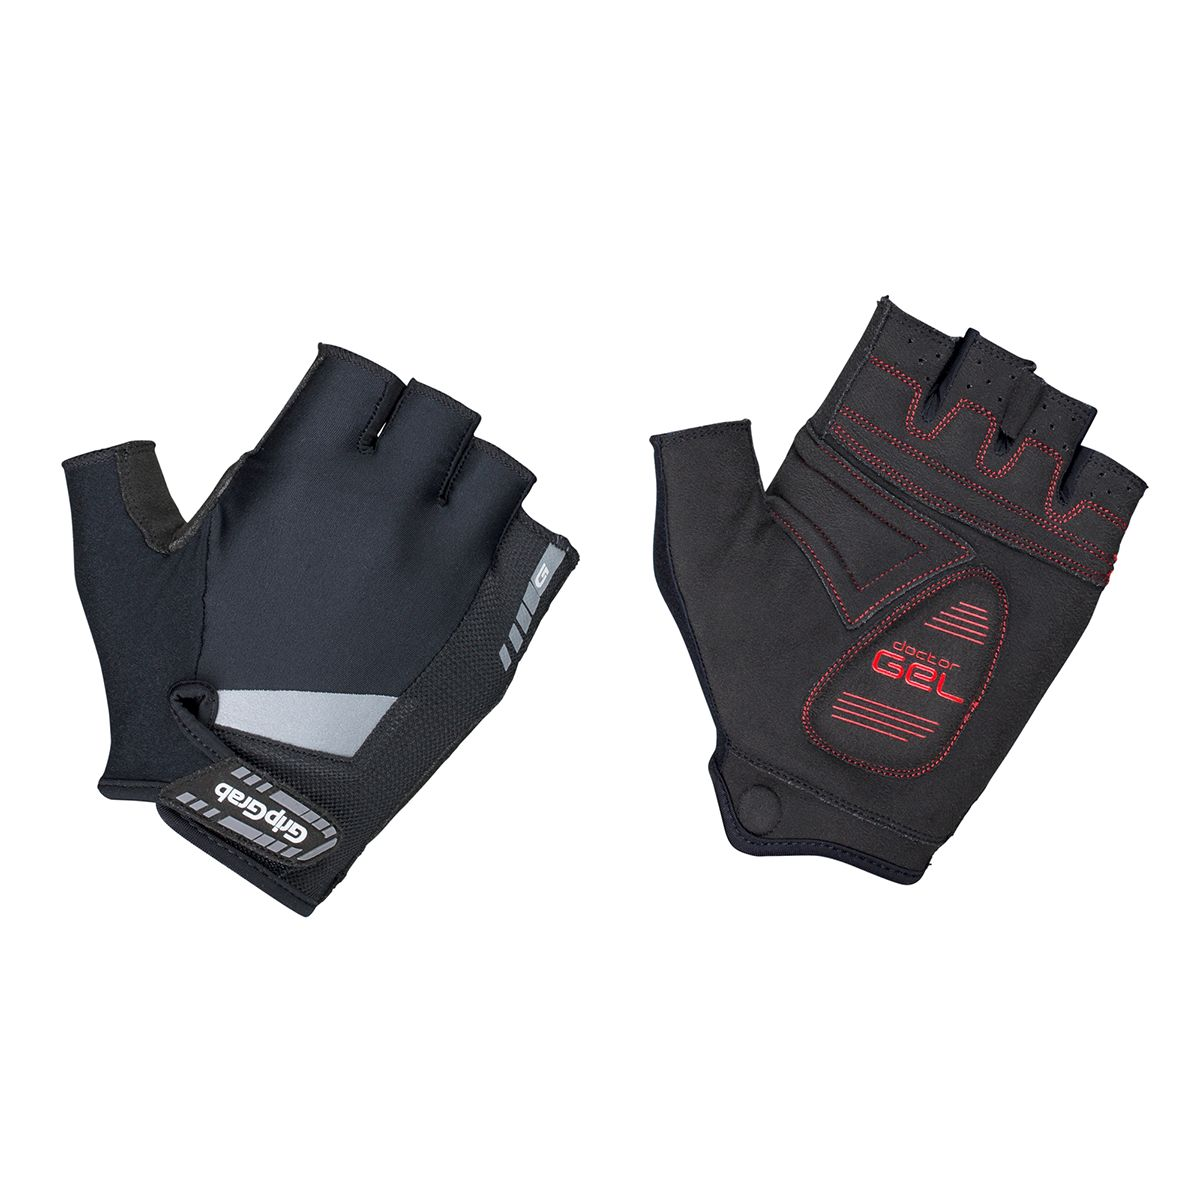 SUPER GEL Padded Short Finger Gloves